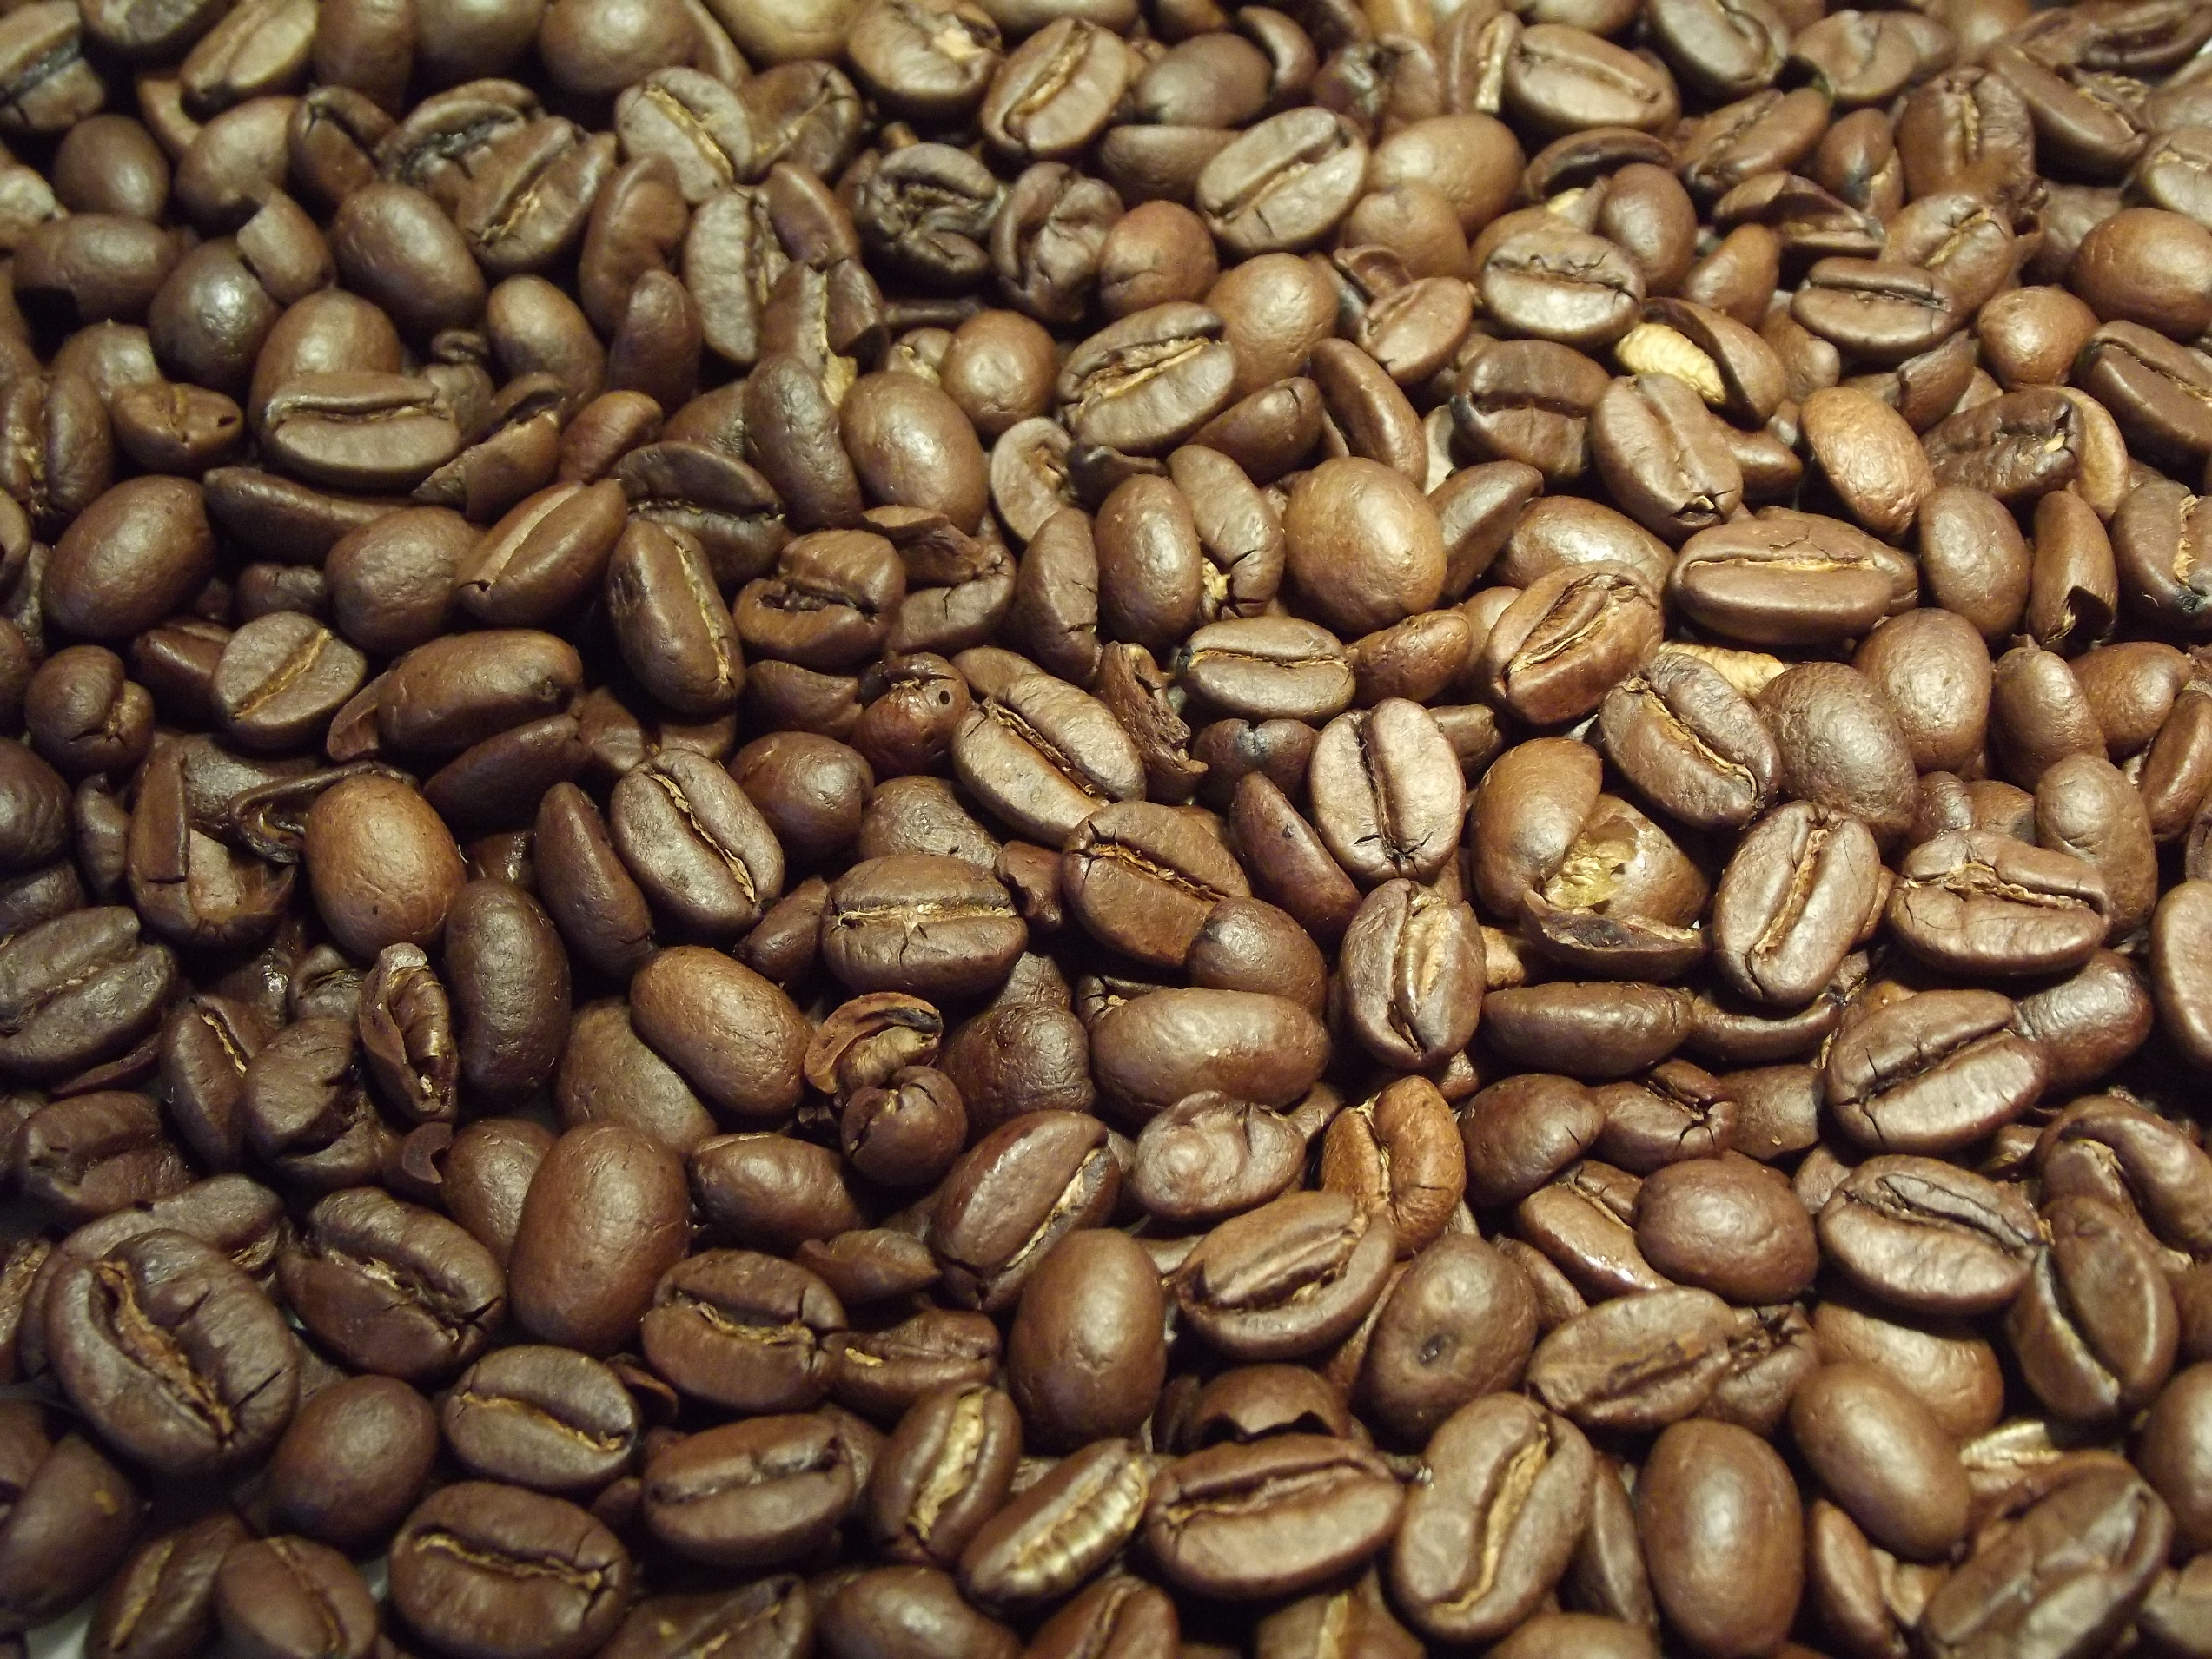 Roasted Coffee Beans, Coffee, Beans, HQ Photo